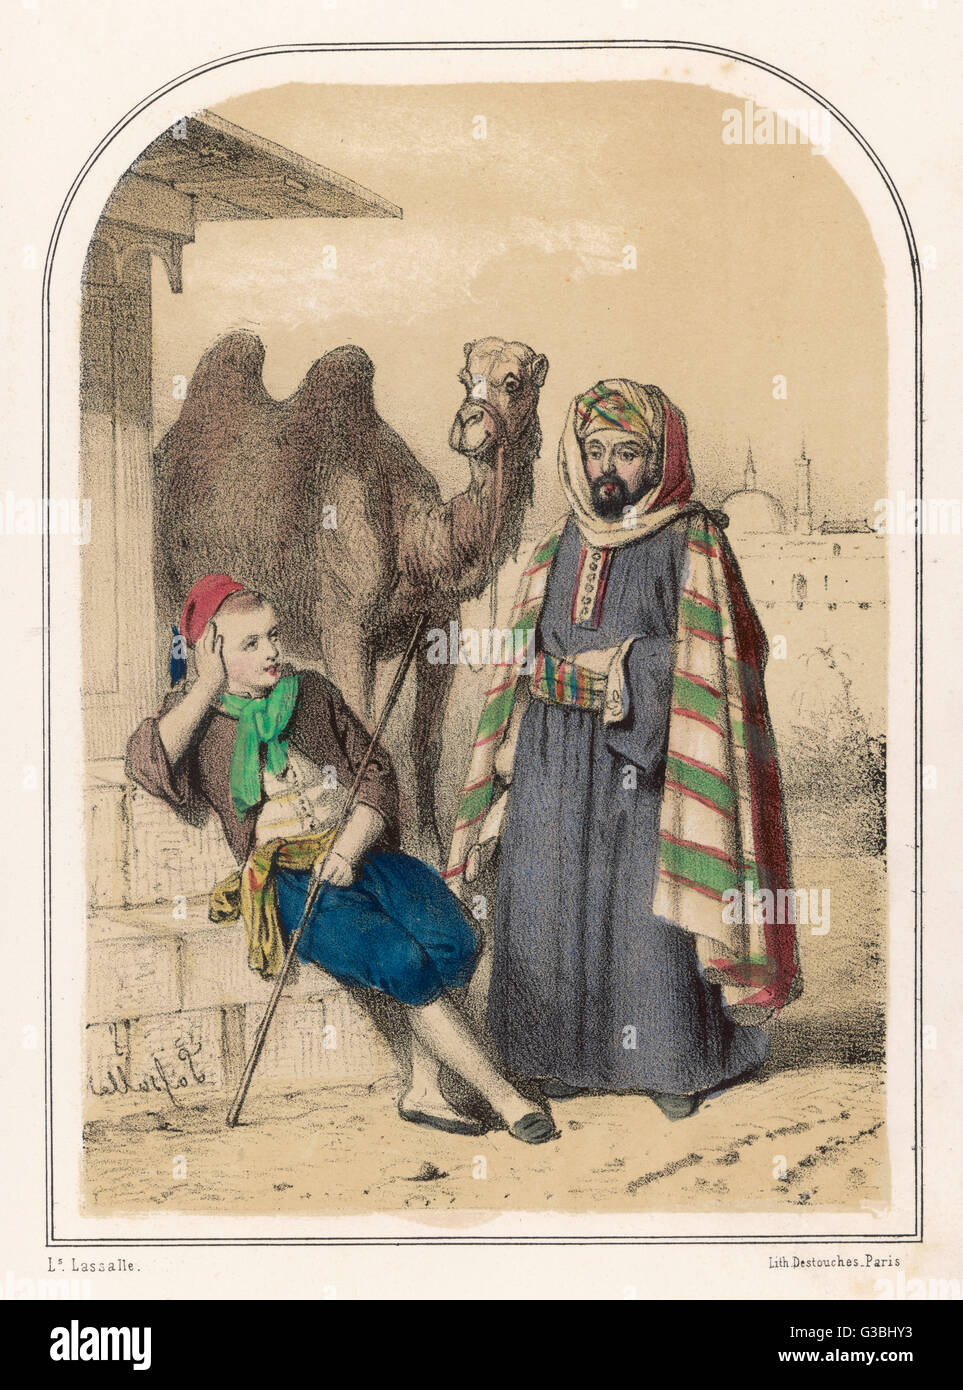 The story of Ali and the wise  camel which will bring good  fortune ...       Date: 19th century - Stock Image